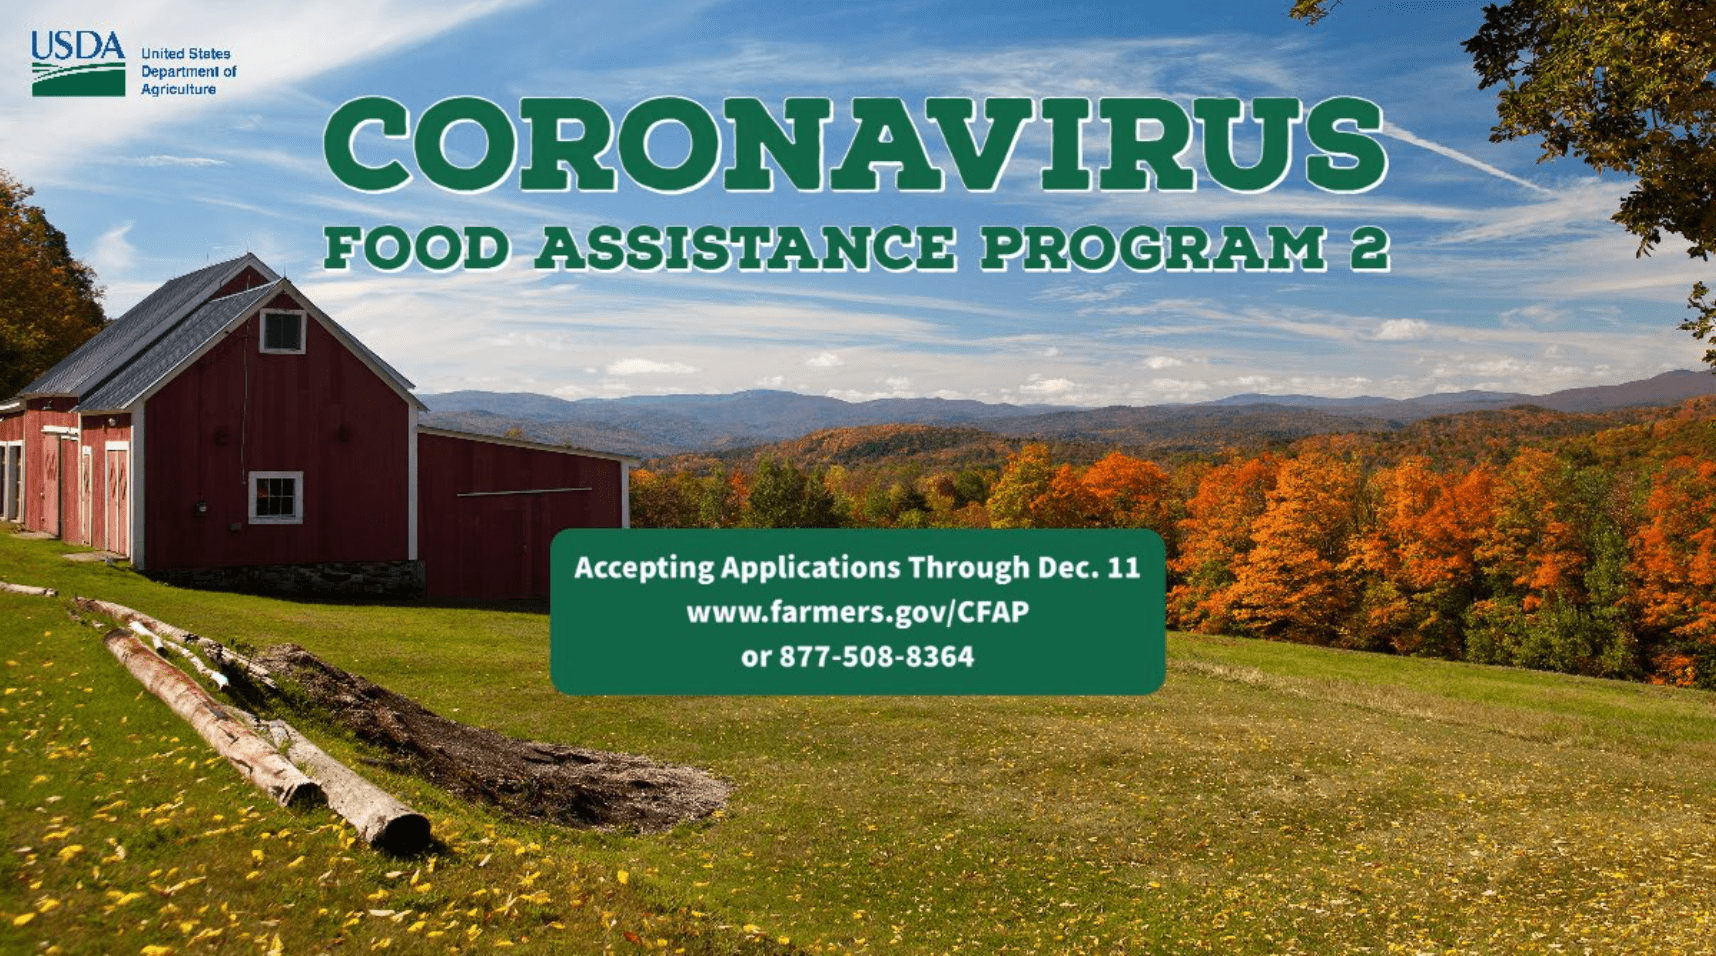 @USDA is now accepting applications for the Coronavirus Food Assistance Program 2 through Dec. 11, 2020. farmers.gov/CFAP #CFAP Contact the Highland County USDA FSA office to learn more.